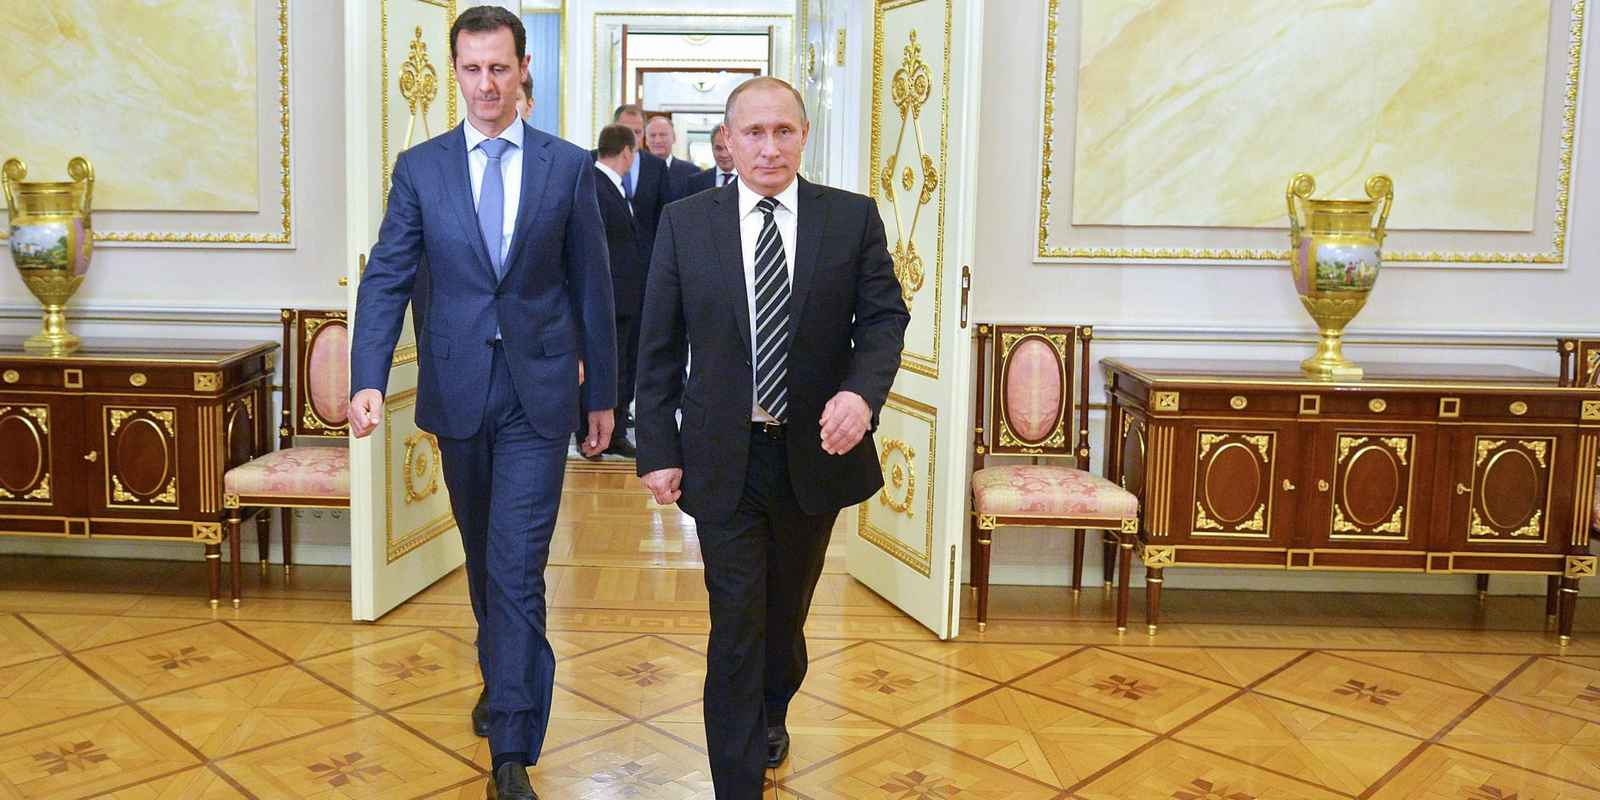 "Russian President Vladimir Putin (R) greets his Syrian counterpart Bashar al-Assad upon his arrival for a meeting at the Kremlin in Moscow on October 21, 2015. Assad, on his first foreign visit since Syria's war broke out, told his main backer and counterpart Putin in Moscow that Russia's campaign in Syria has helped contain ""terrorism"". AFP PHOTO / RIA NOVOSTI / KREMLIN POOL / ALEXEY DRUZHININ        (Photo credit should read ALEXEY DRUZHININ/AFP/Getty Images)"